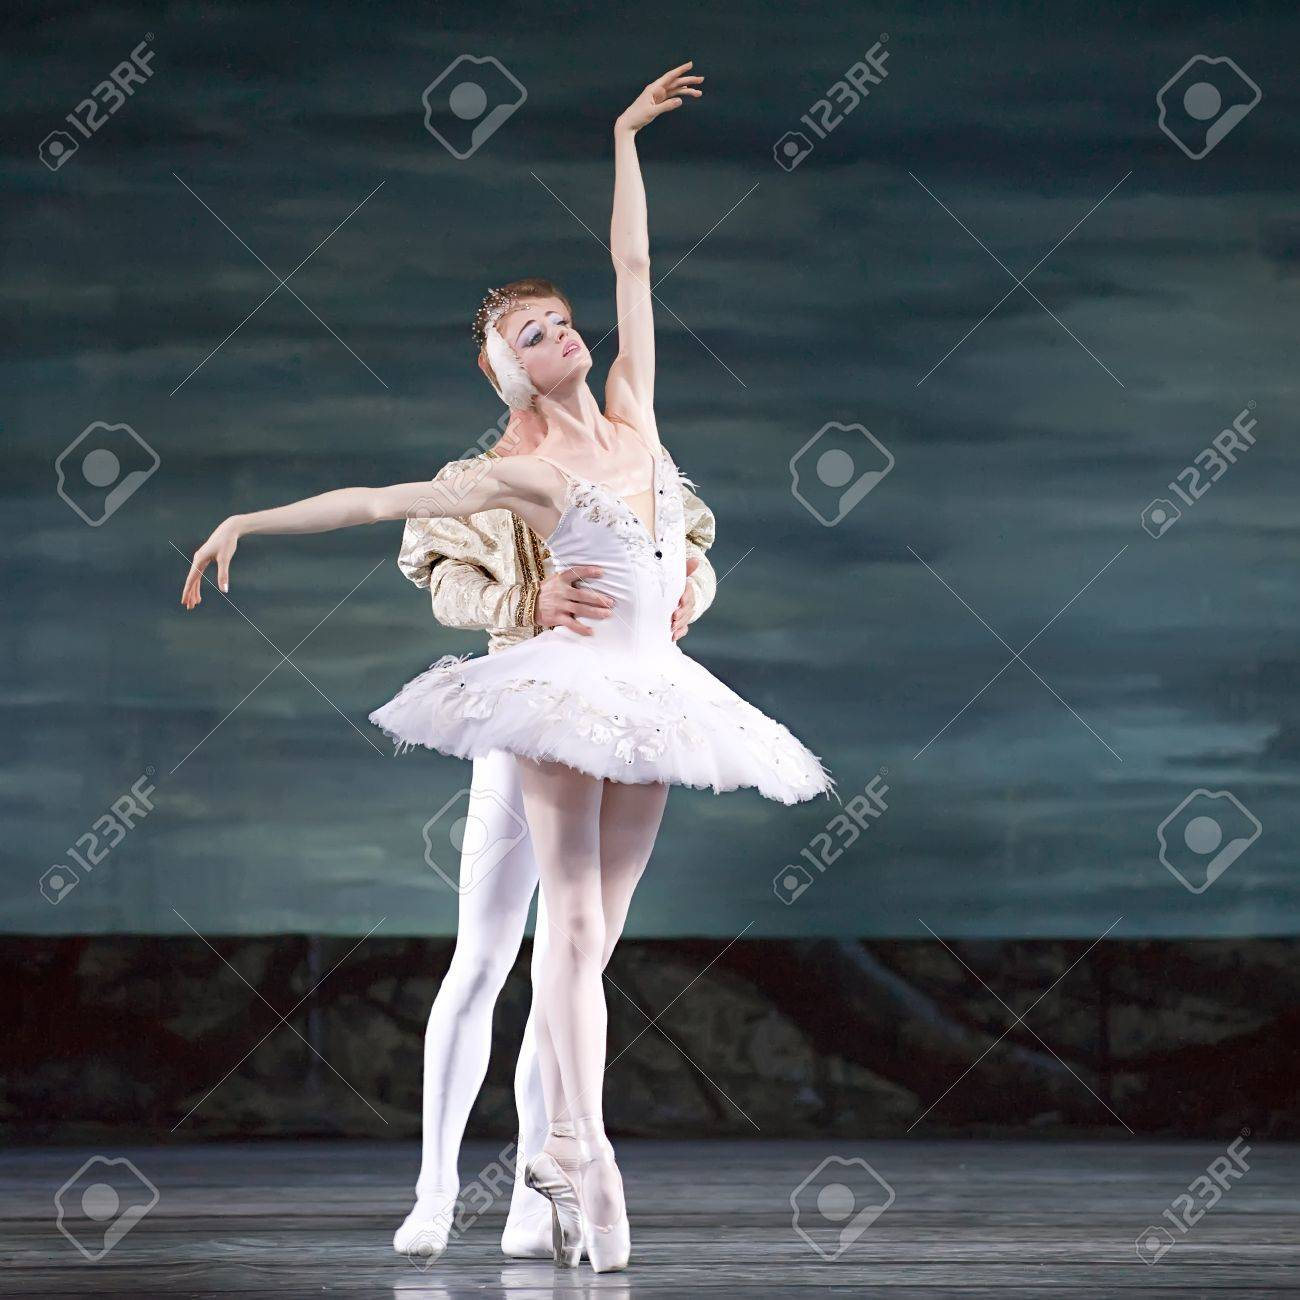 CHENGDU - DEC 24: Swan Lake ballet performed by Russian royal ballet at Jinsha theater December 24, 2008 in Chengdu, China. Stock Photo - 8491552